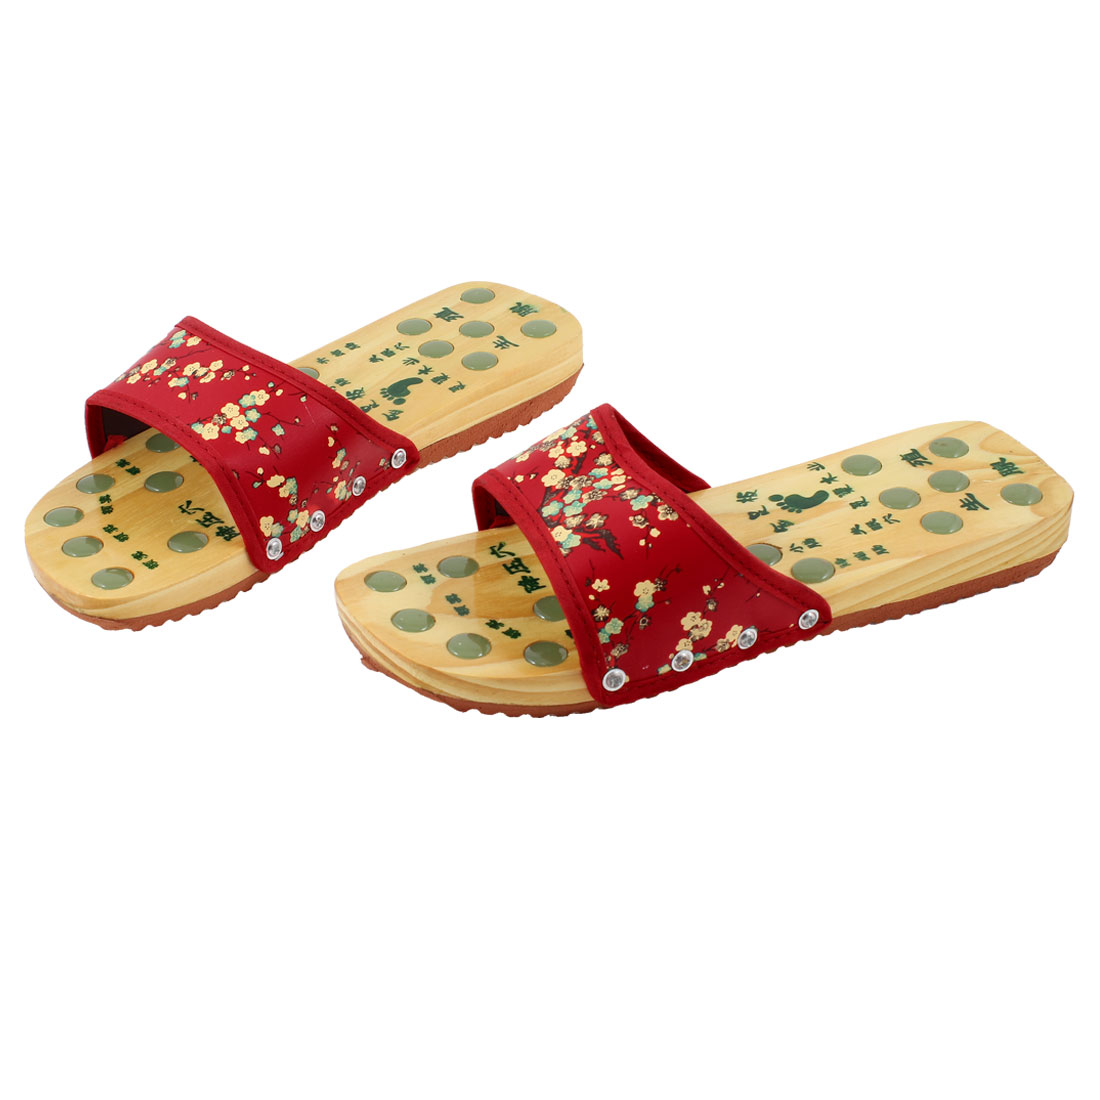 Lady Wintersweet Pattern Wooden Healthy Foot Massage Clogs Slippers Red